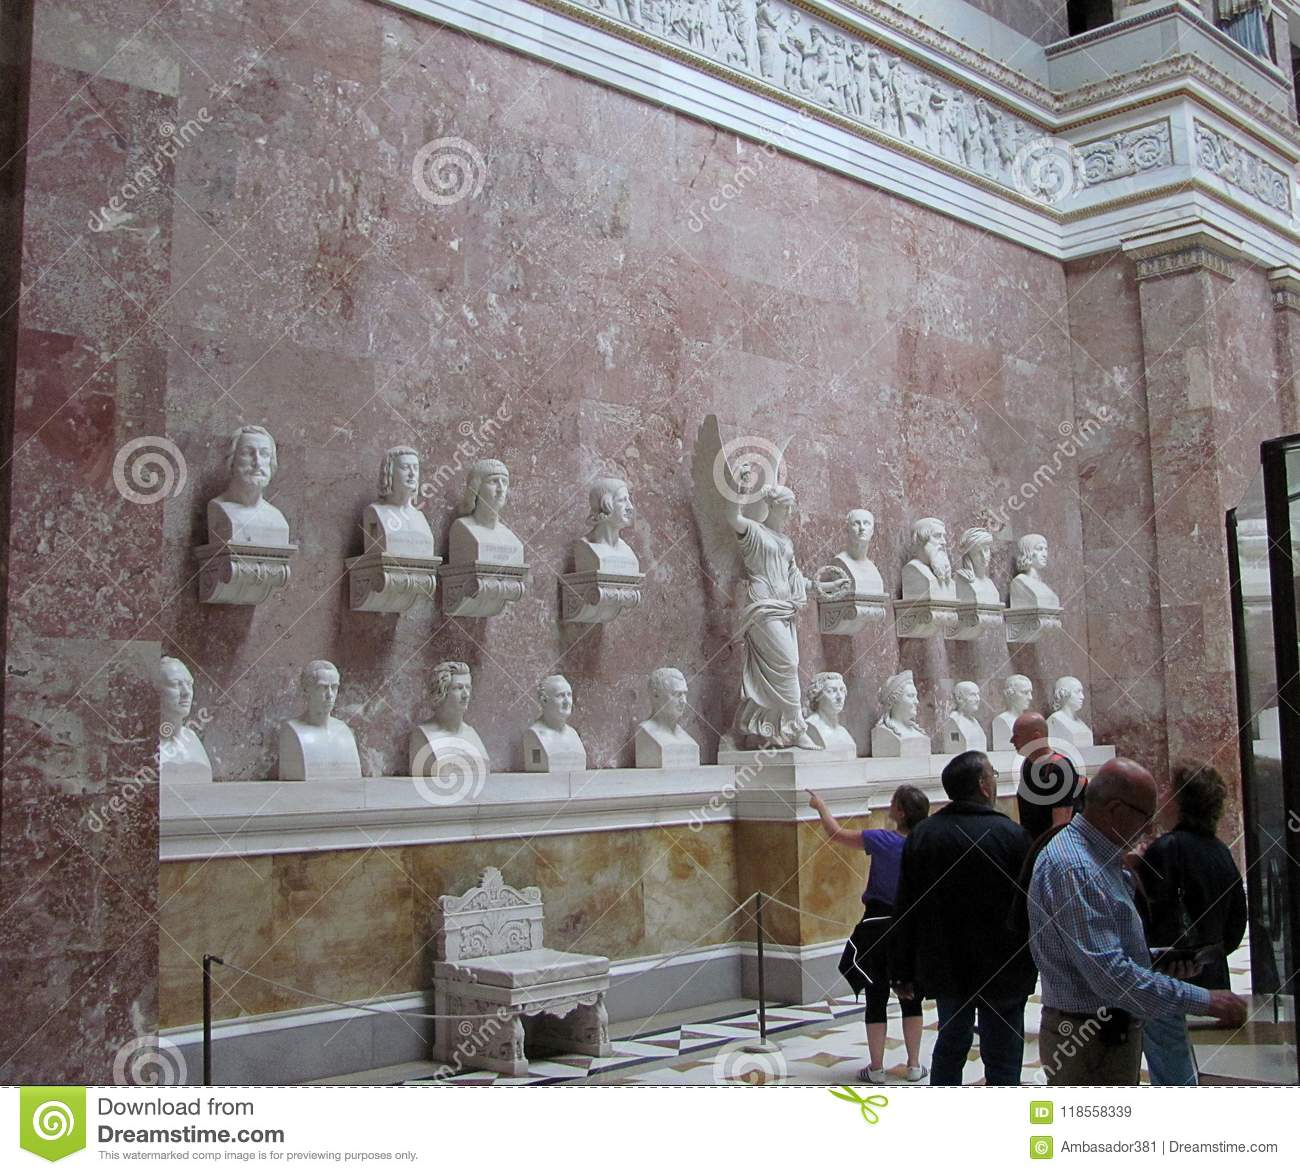 Many stairs - Picture of Walhalla Temple, Donaustauf ... |Inside Walhalla Memorial